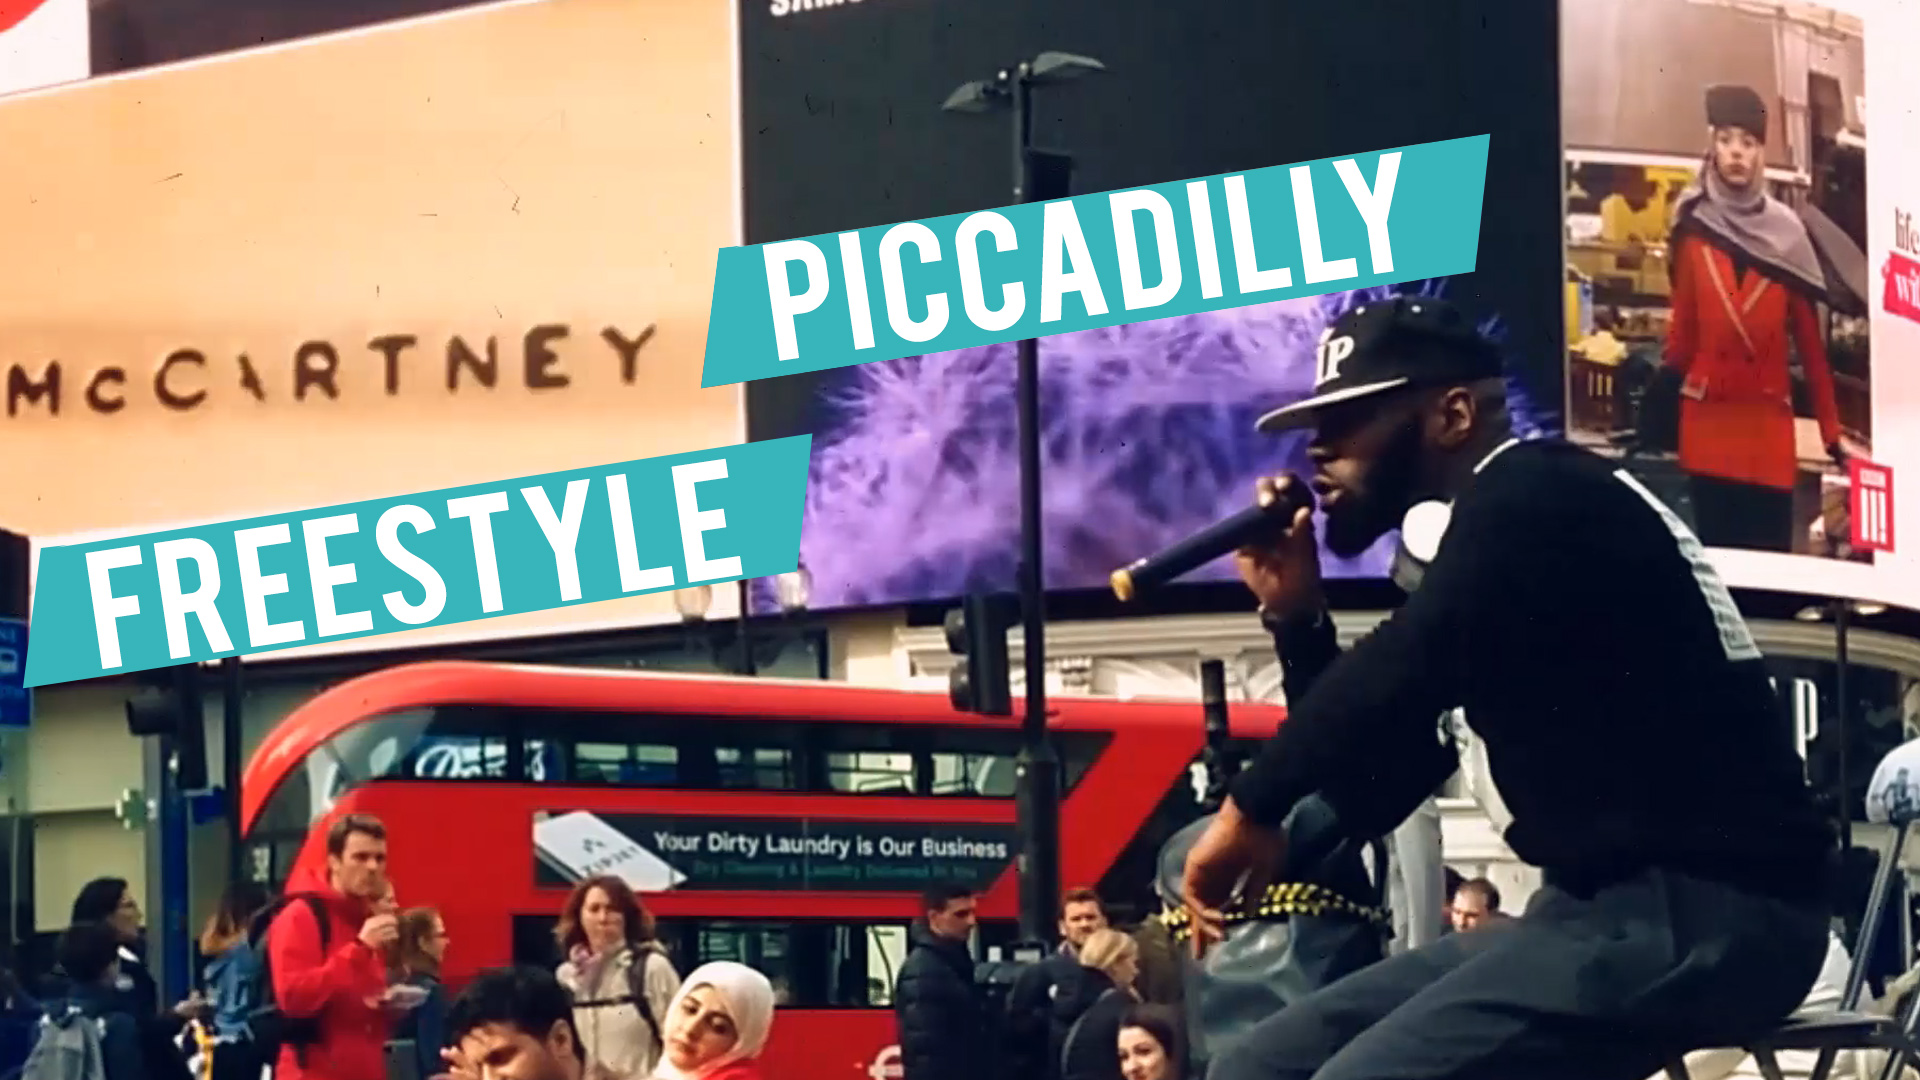 London Scratcheverywhere Freestyle: Dj Samy ft. Victorious1 (Piccadilly Circus)